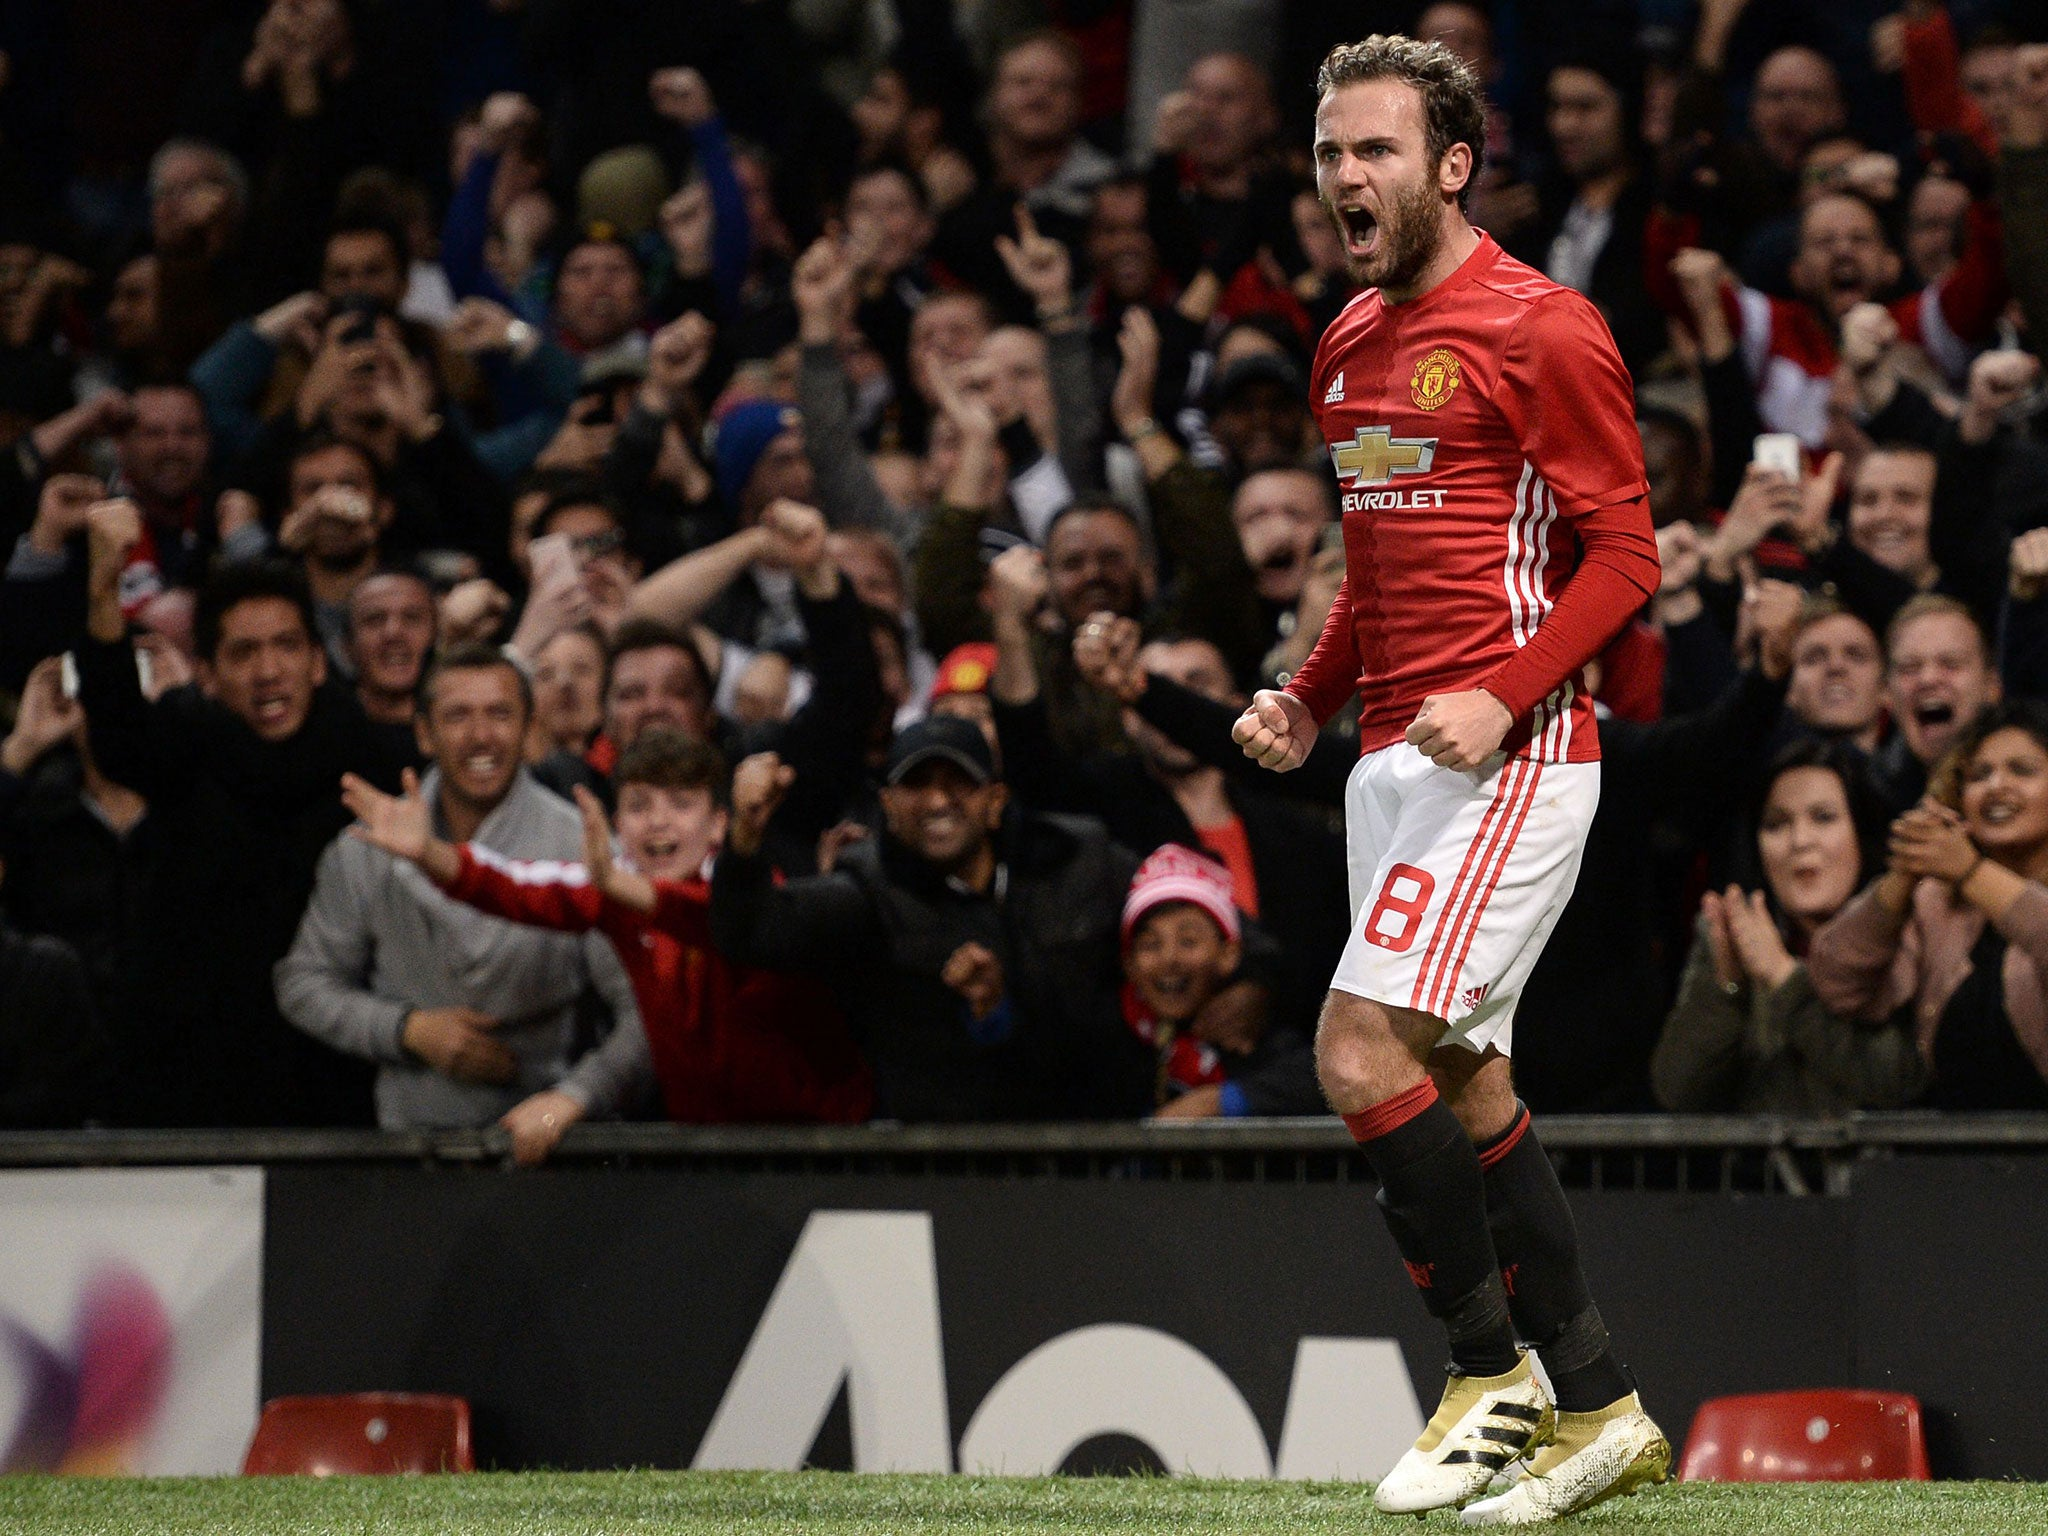 Manchester United Vs Manchester City As It Happened: Juan